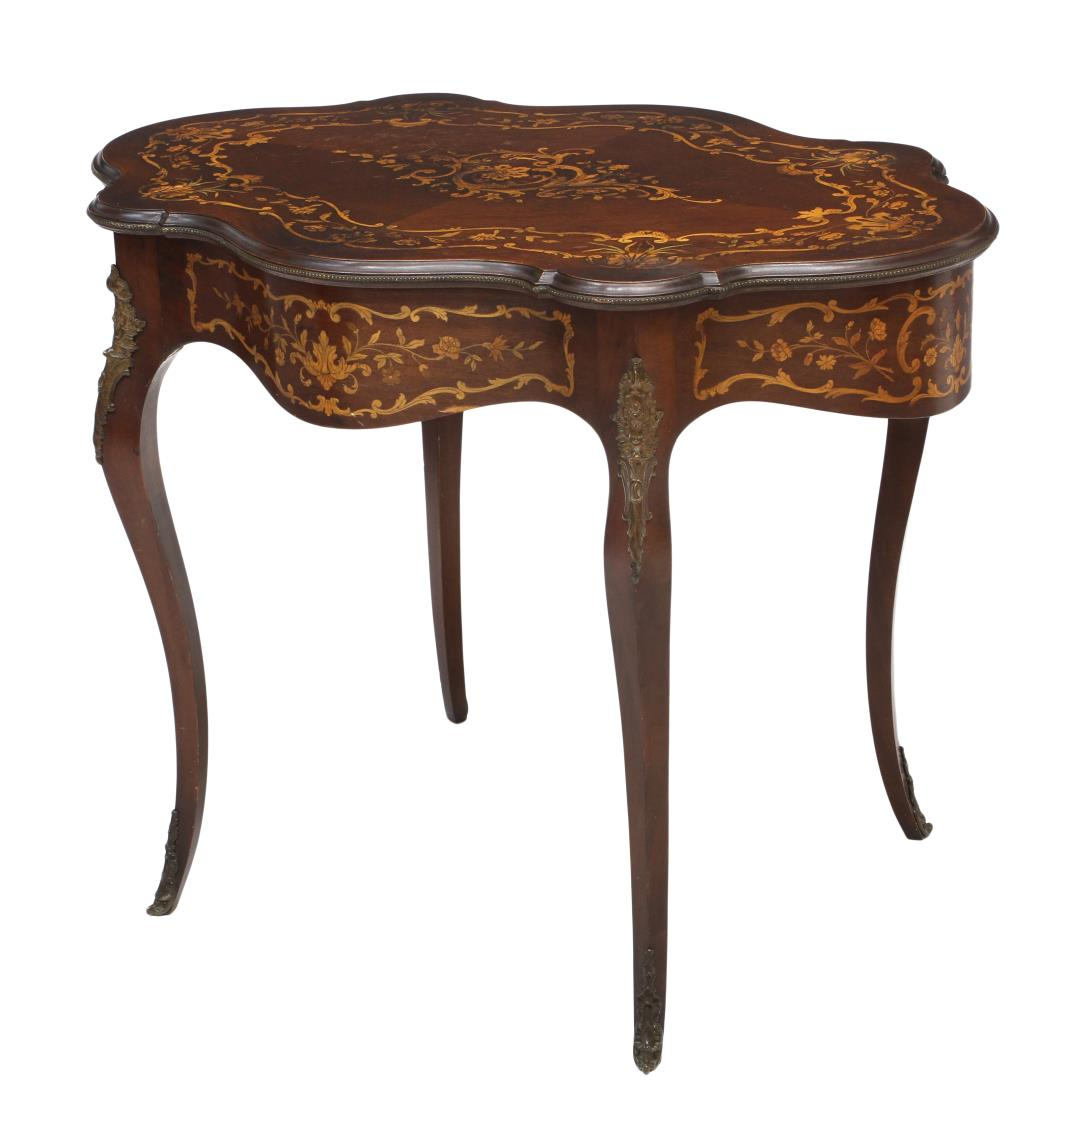 LOUIS XV STYLE MARQUETRY CENTER TABLE - Spectacular Holiday 2 Day ...